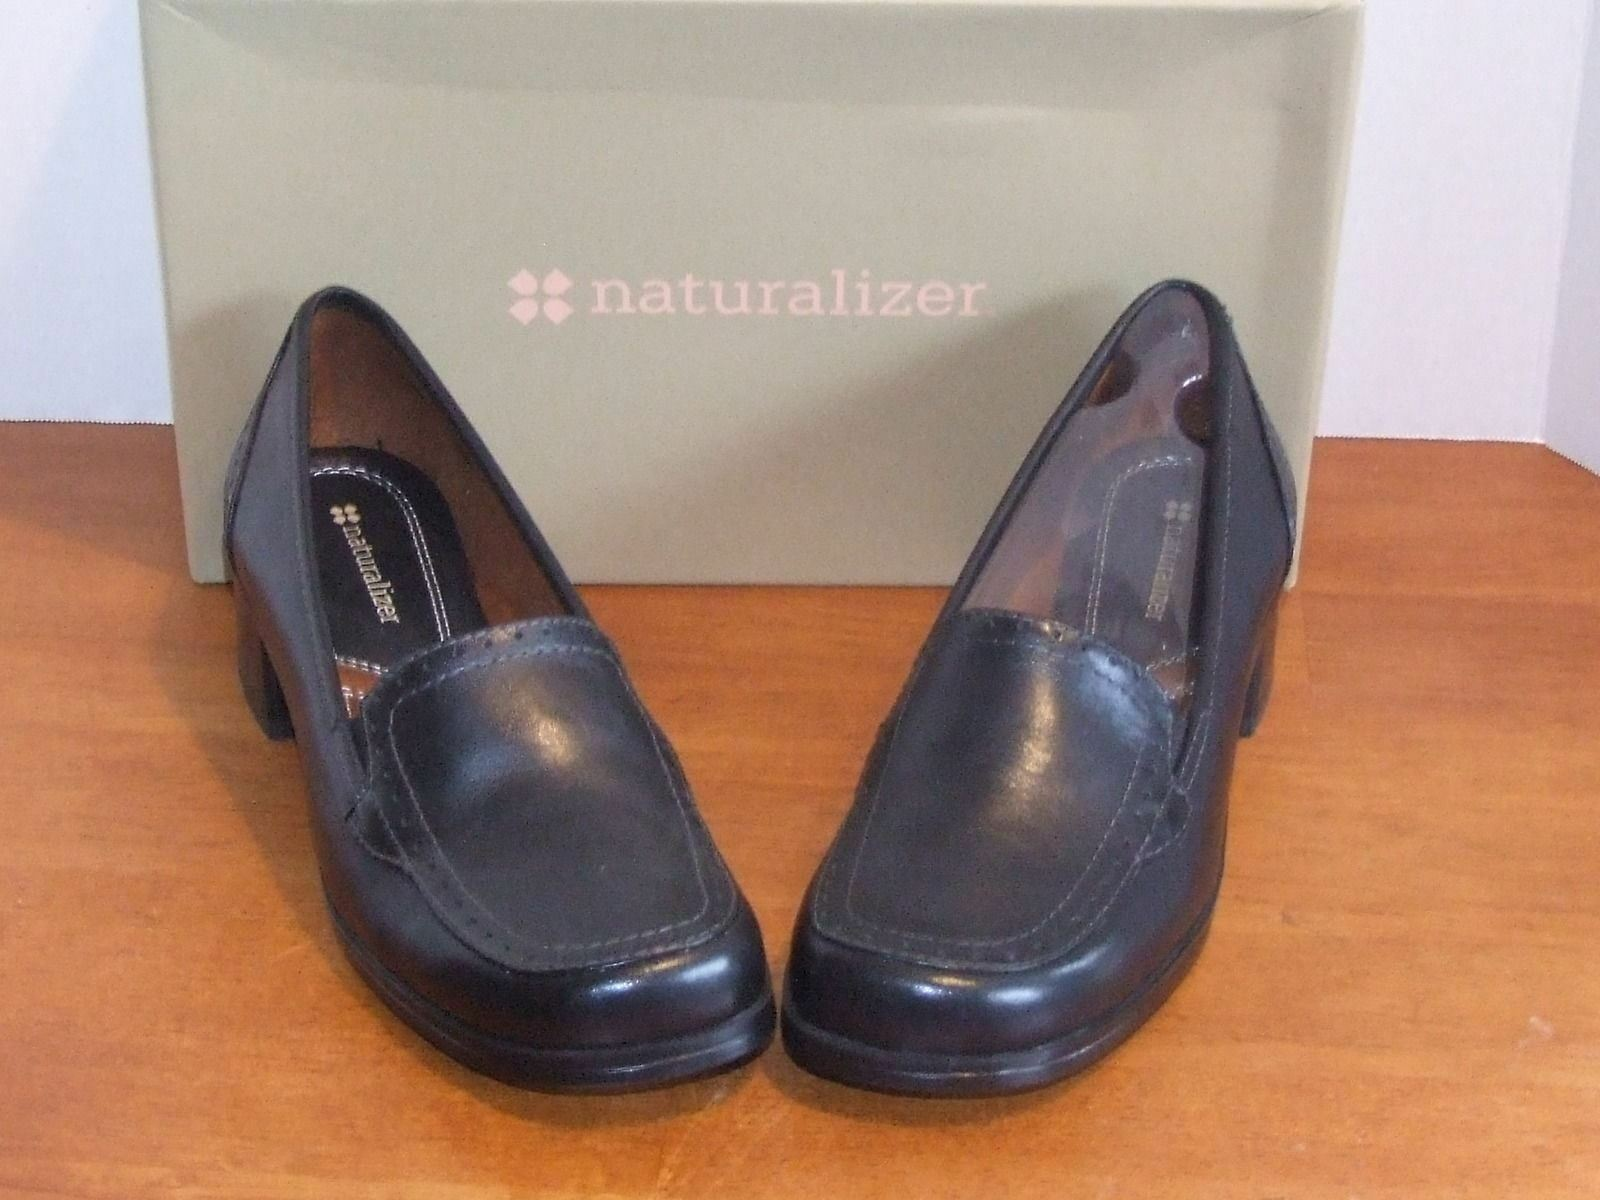 Naturalizer Symbolize Black or Coffee Bean Leather Shoe 1 1/2